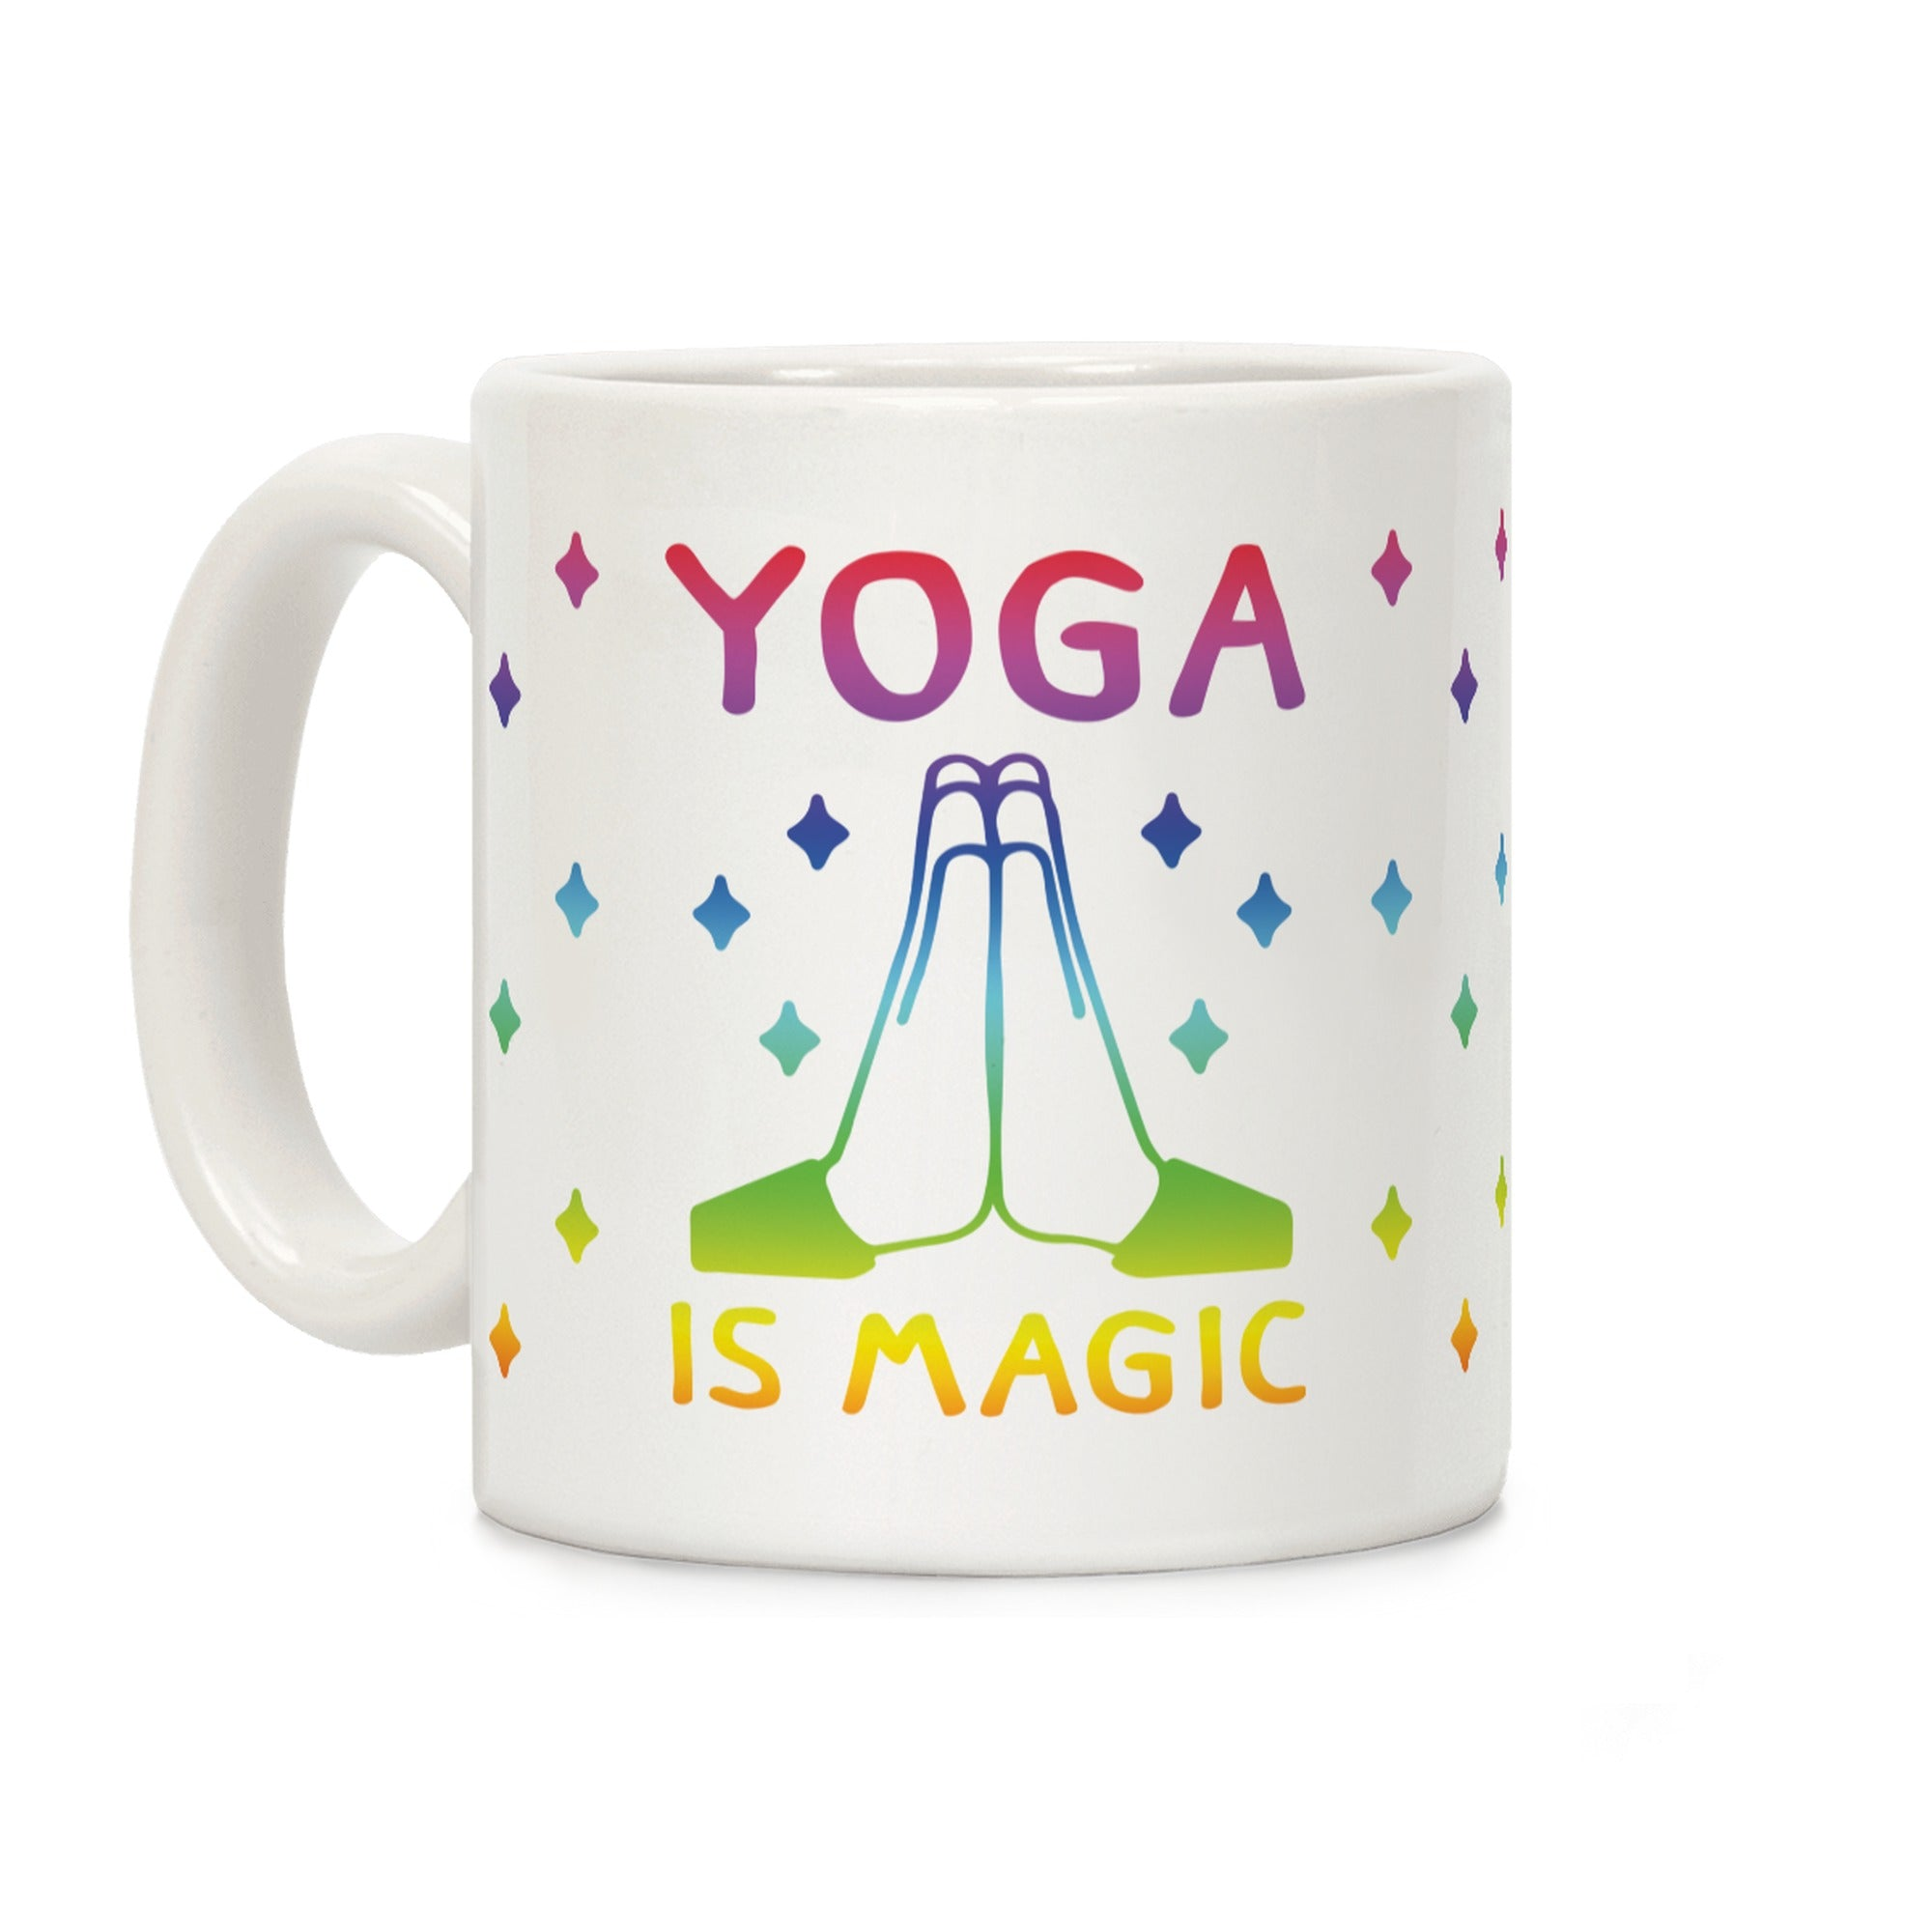 Yoga Is Magic Ceramic Coffee Mug by LookHUMAN